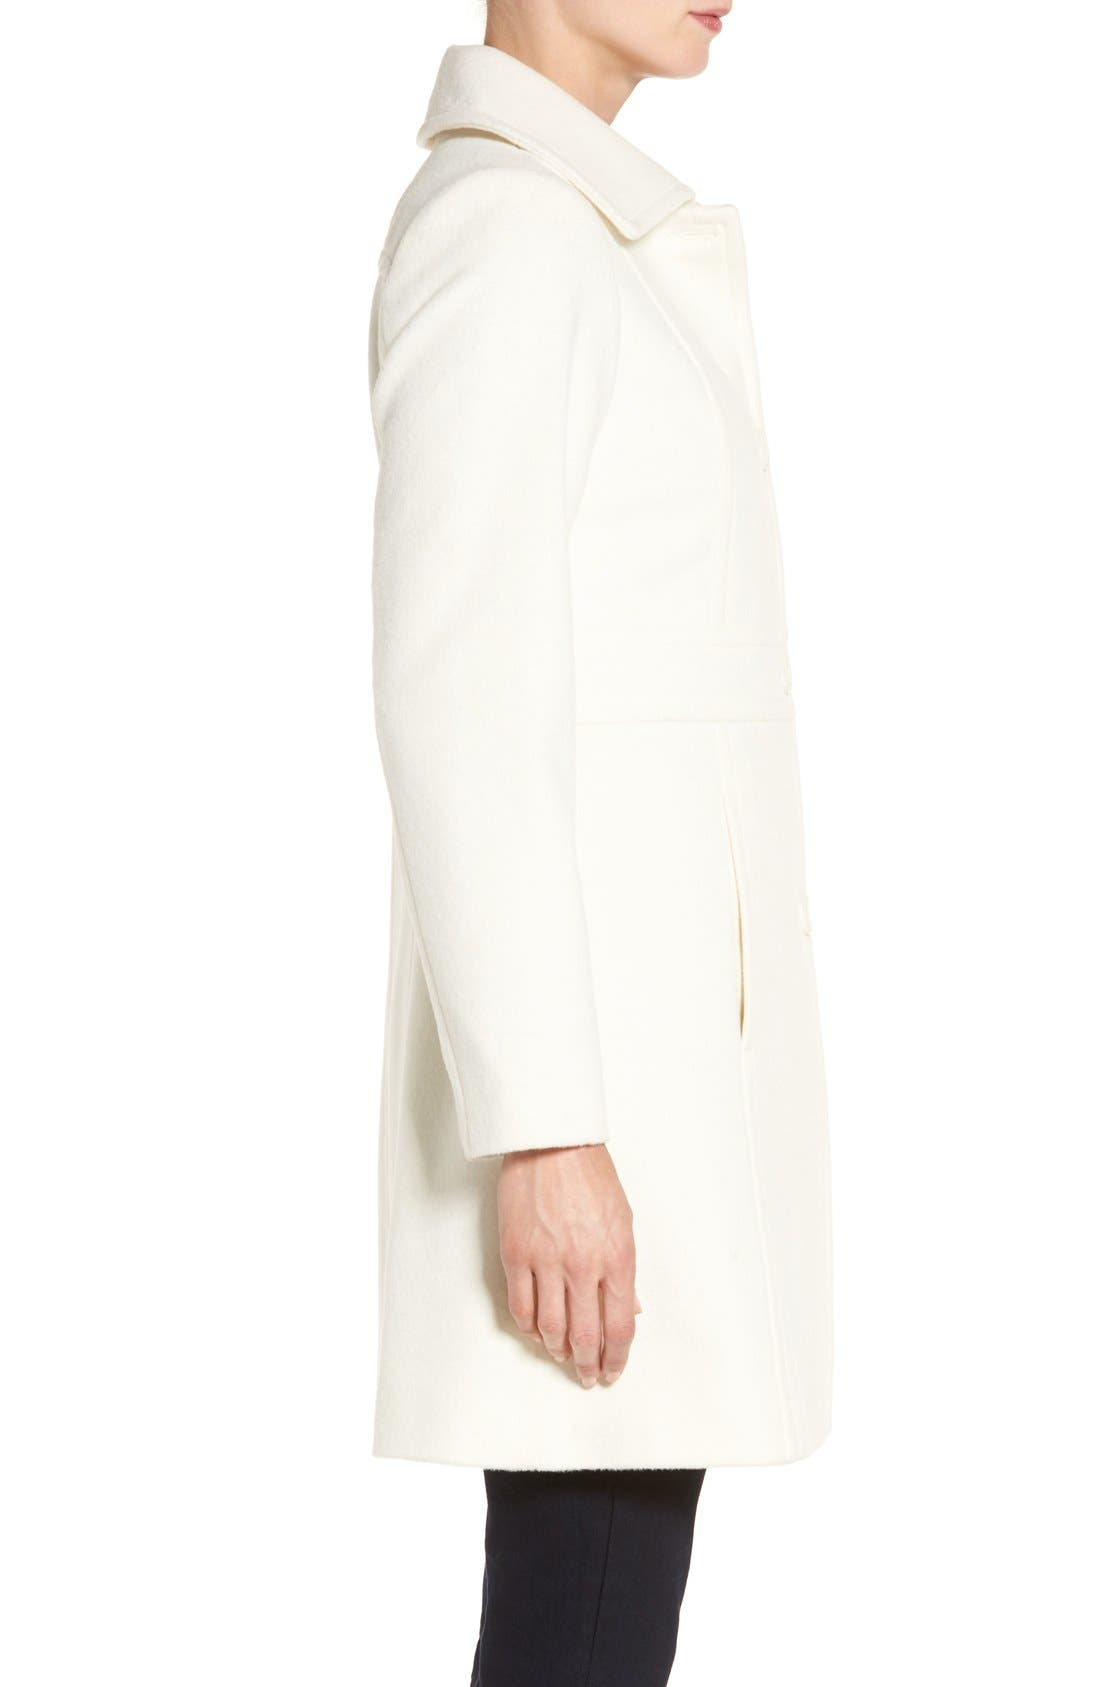 Wool Blend Walking Coat,                             Alternate thumbnail 4, color,                             Winter White